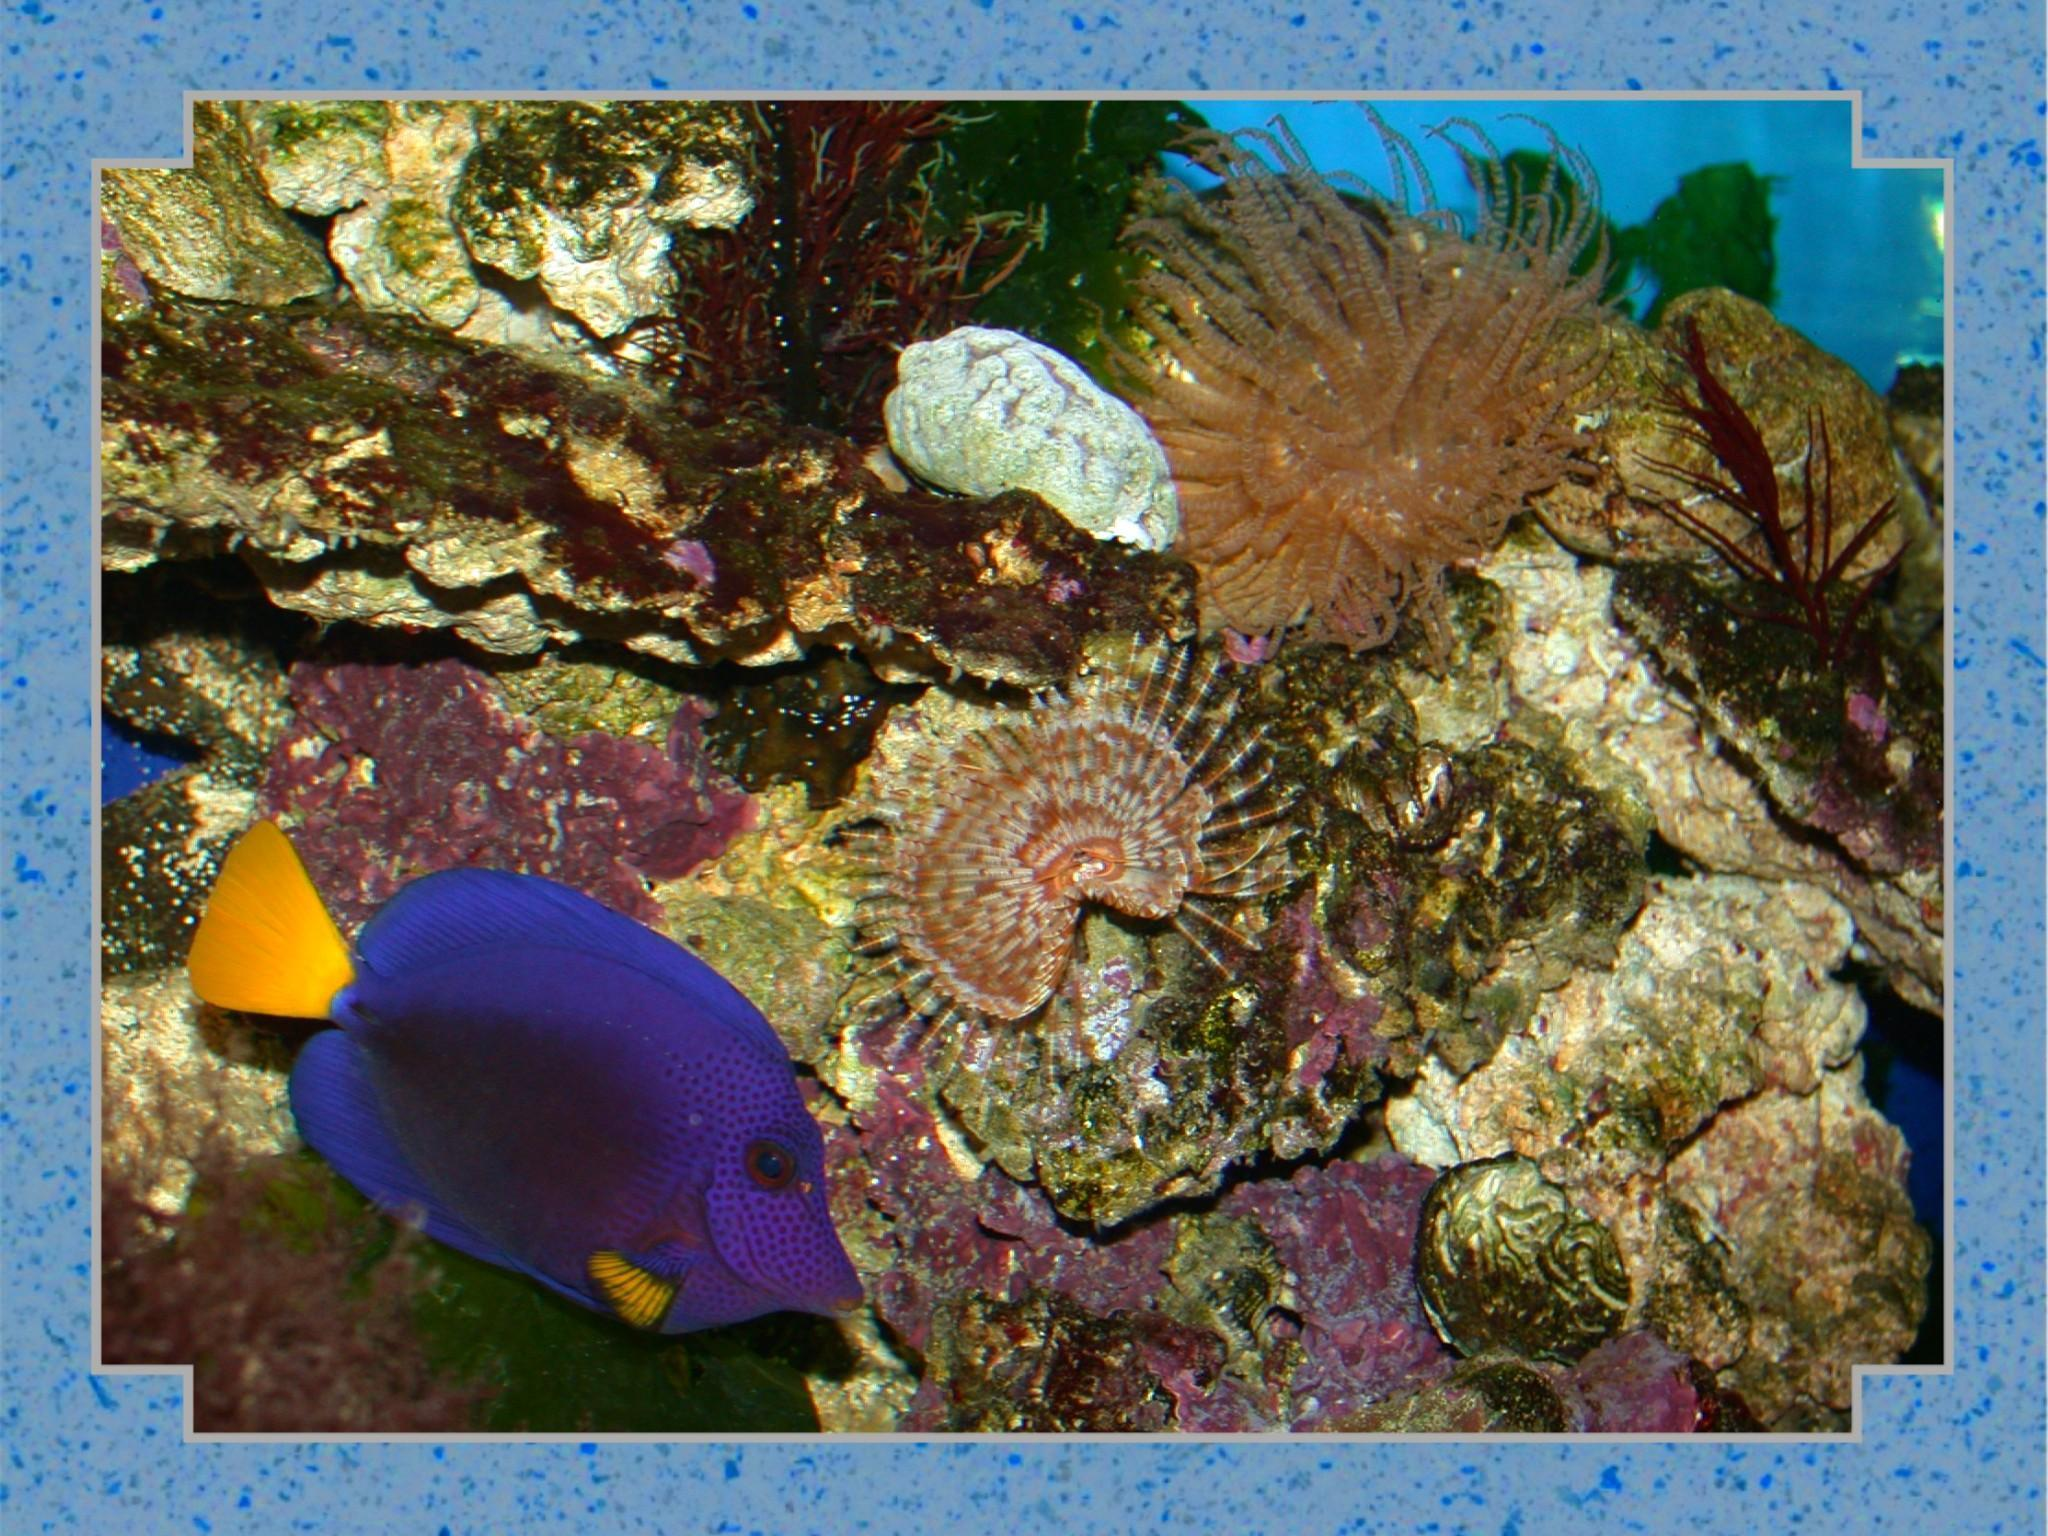 tropic fish - photo #42